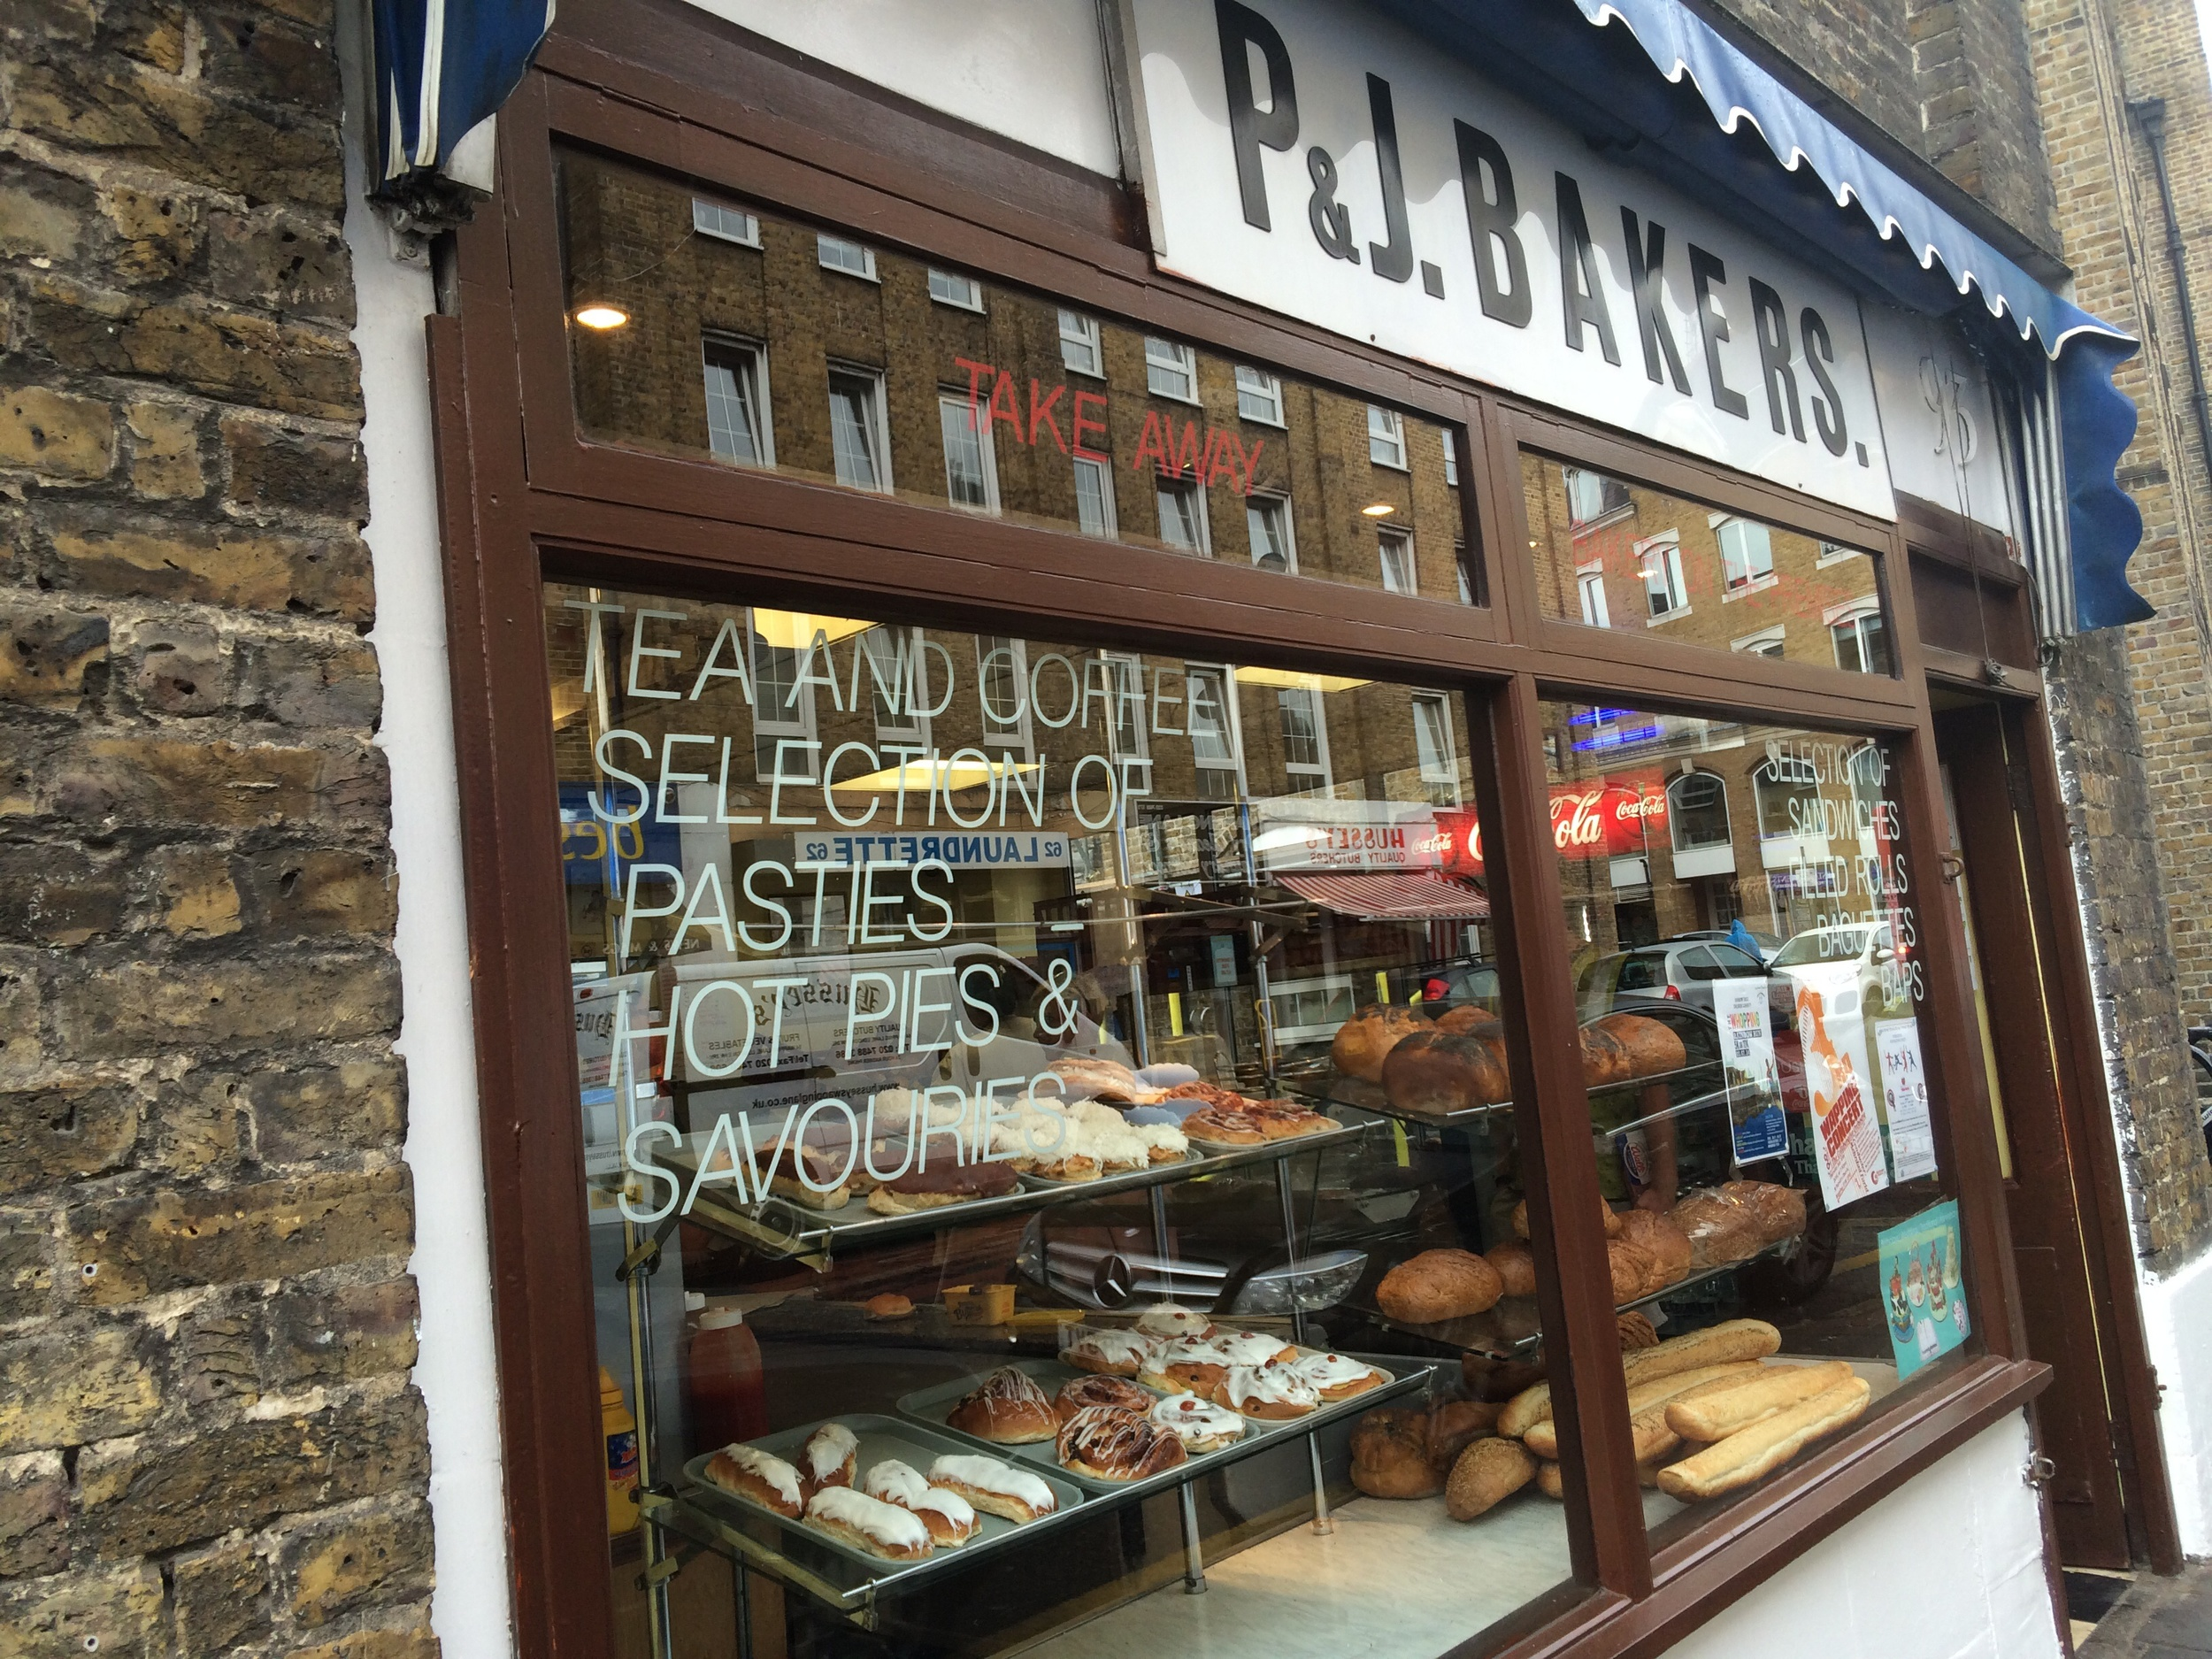 P&J Bakers on Wapping Lane